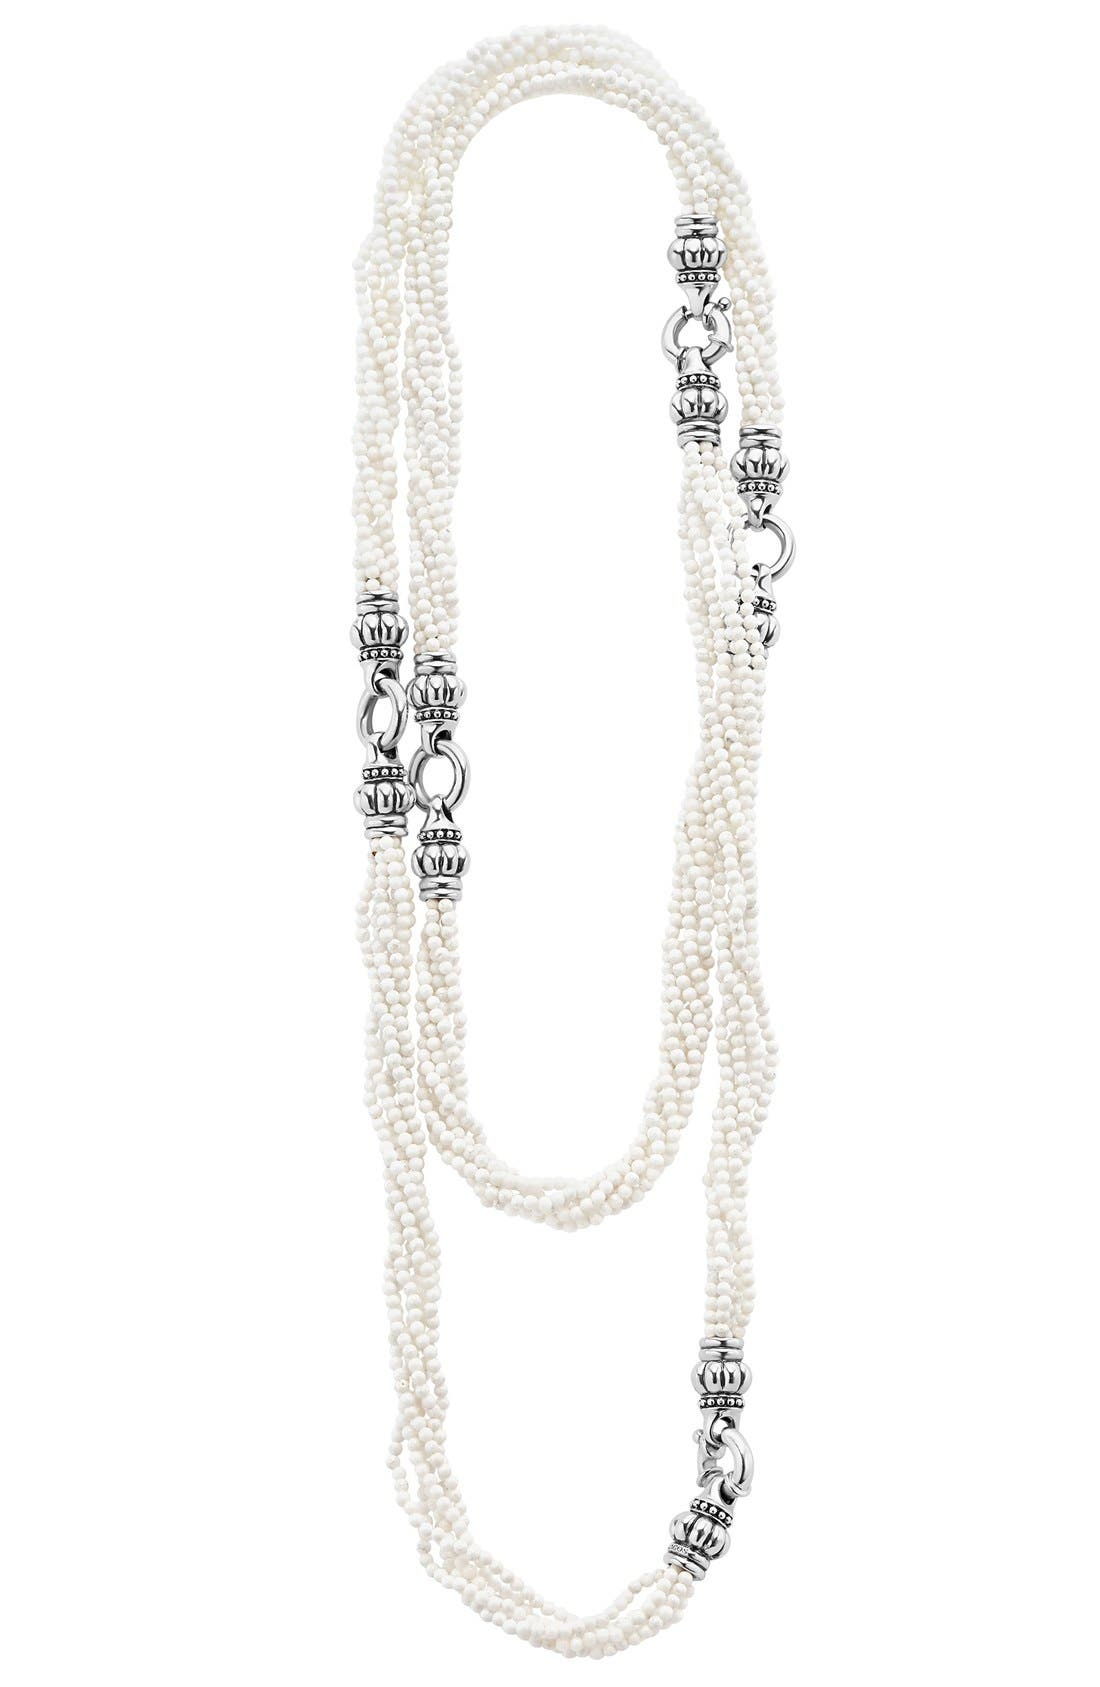 LAGOS Black & White Caviar Agate Multistrand Necklace